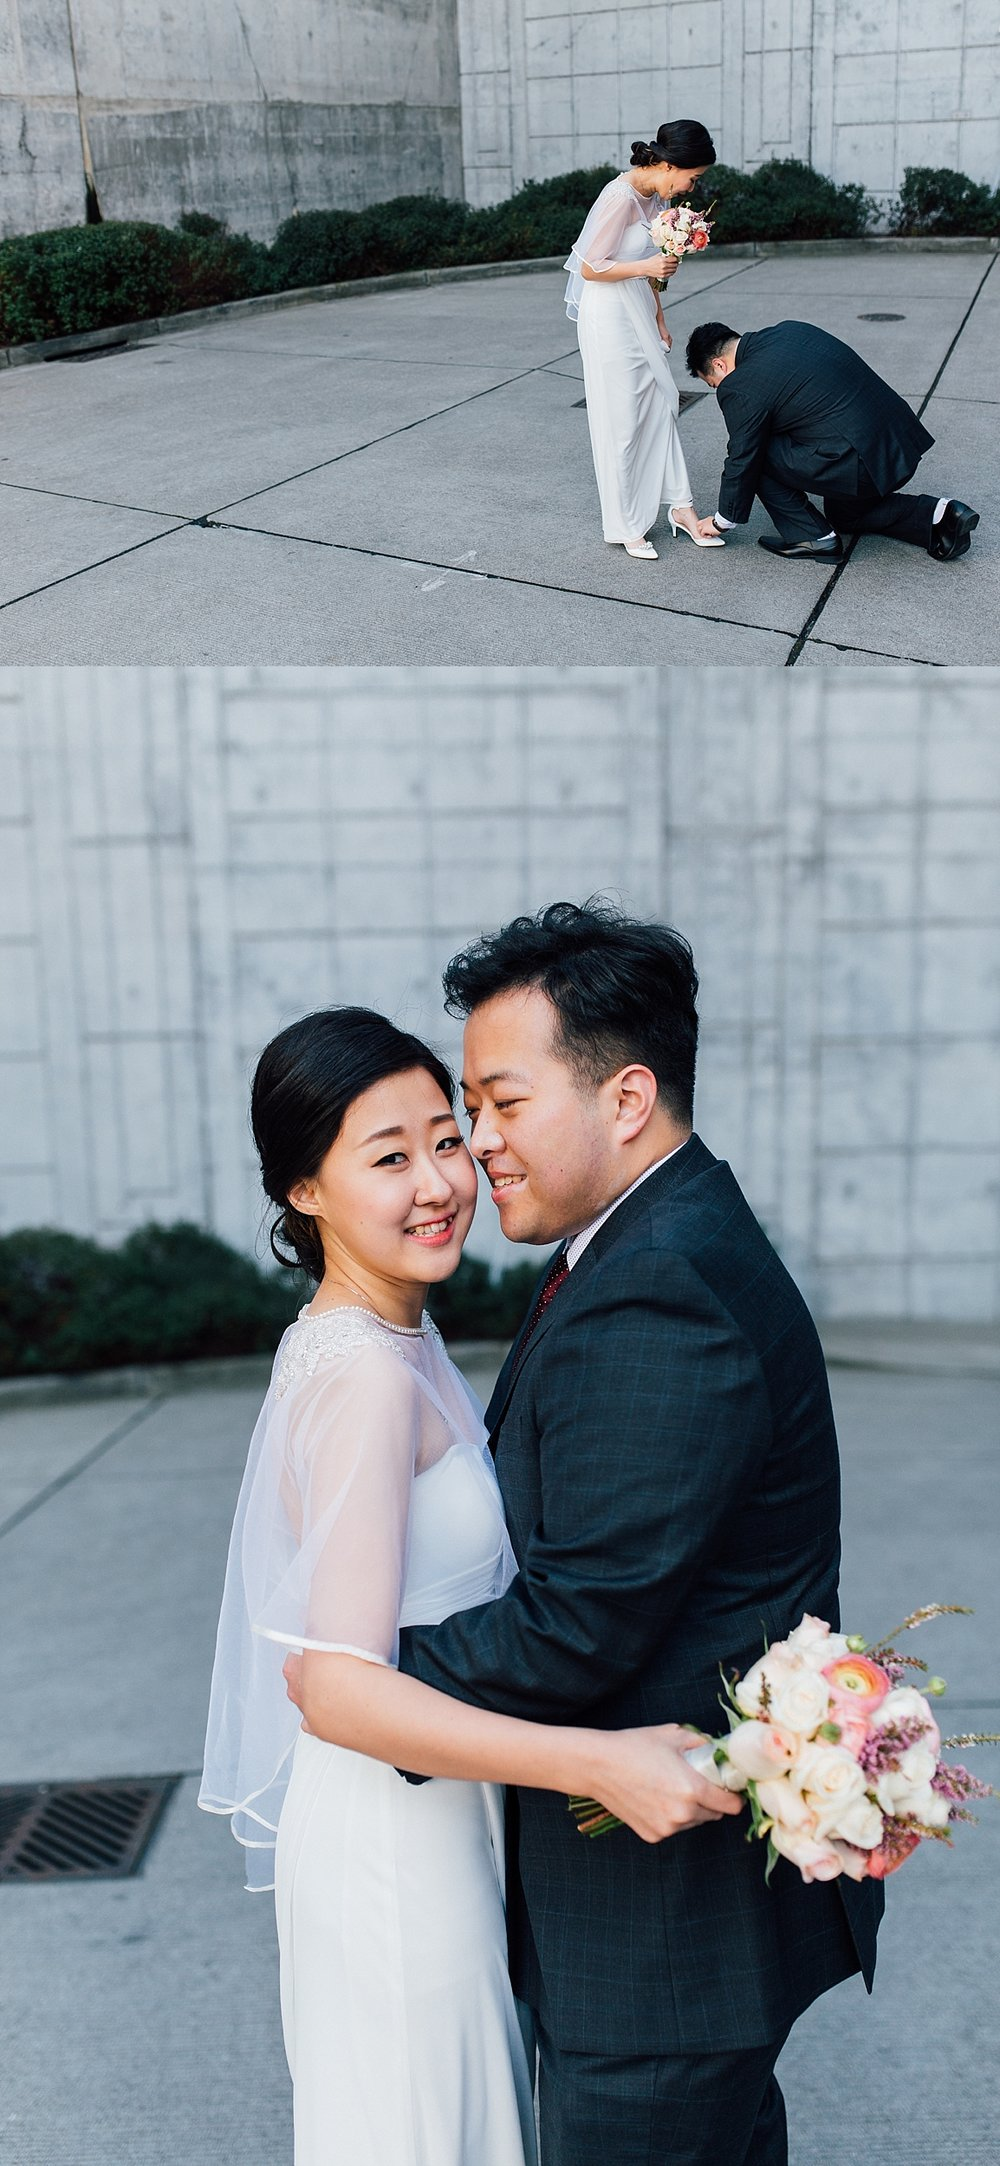 Seattle Courthouse Wedding Photographer PNW elopement Photography - Annie & Alan - Ashley Vos Photography-5.jpg